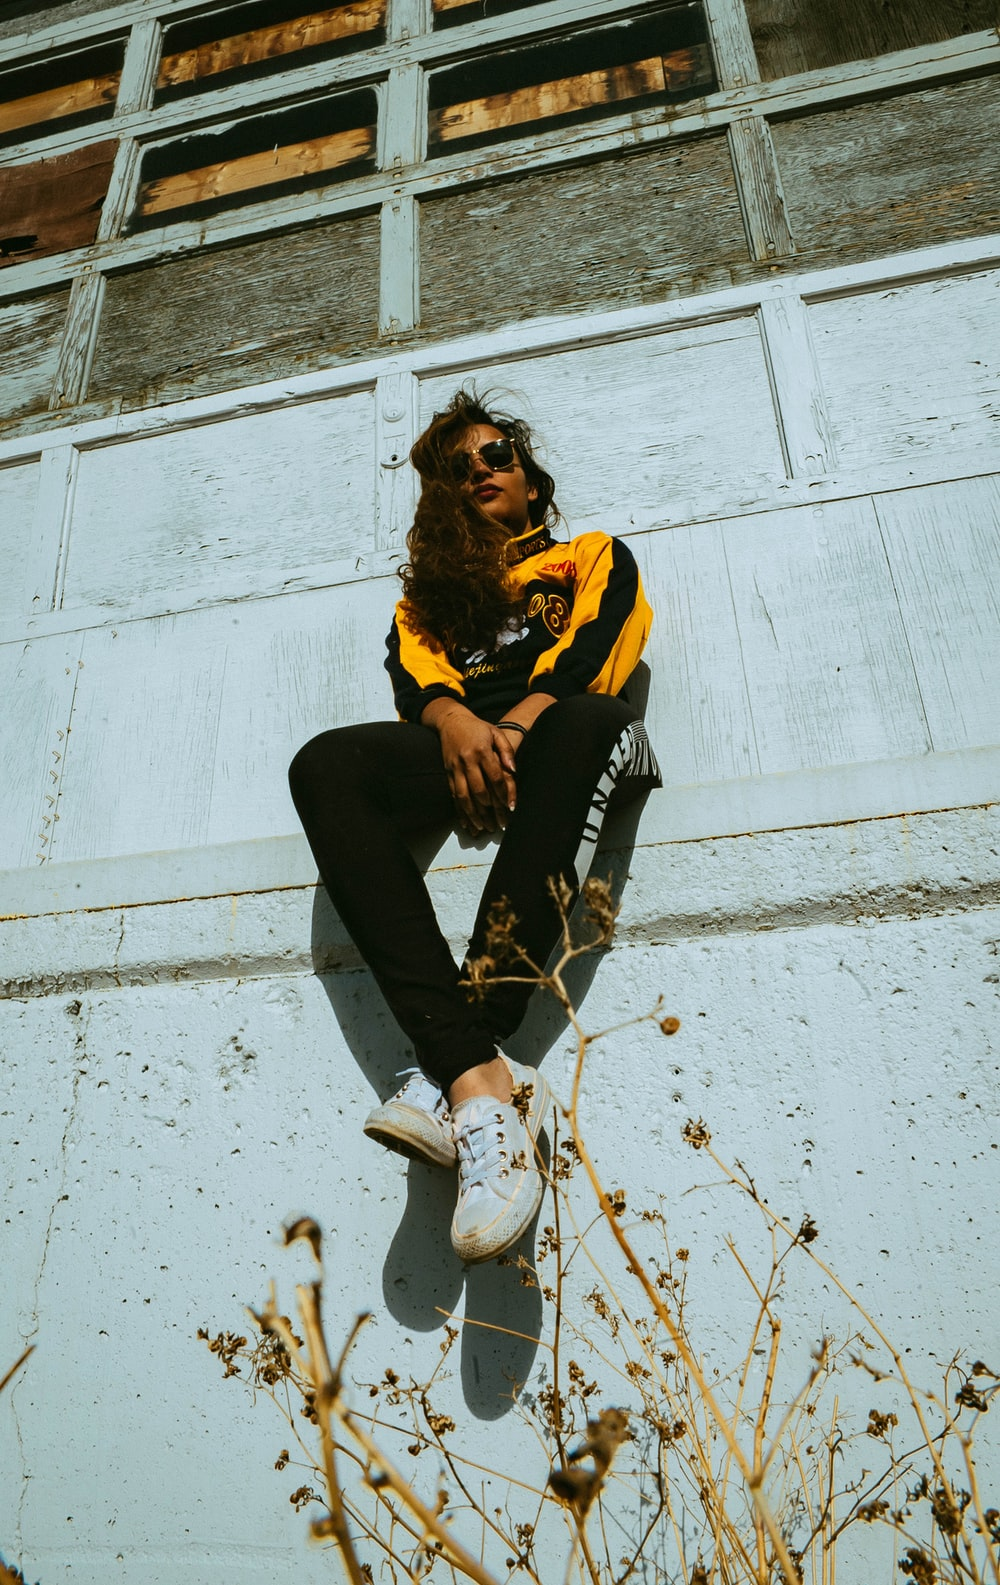 woman wearing black and yellow track suit while sitting